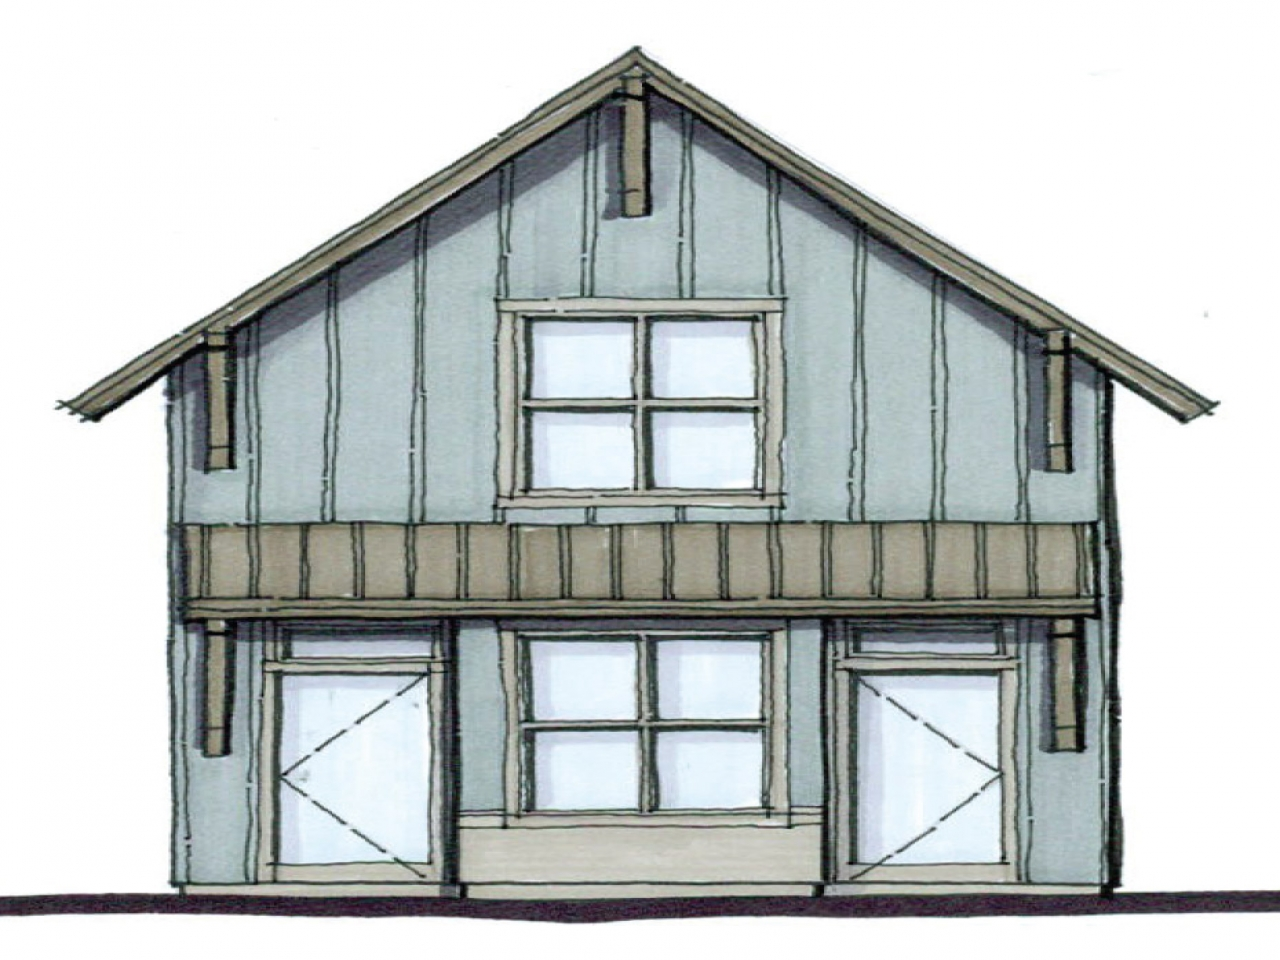 30 x 10 square foot house plans square foot house plans for 10 x 10 in square feet